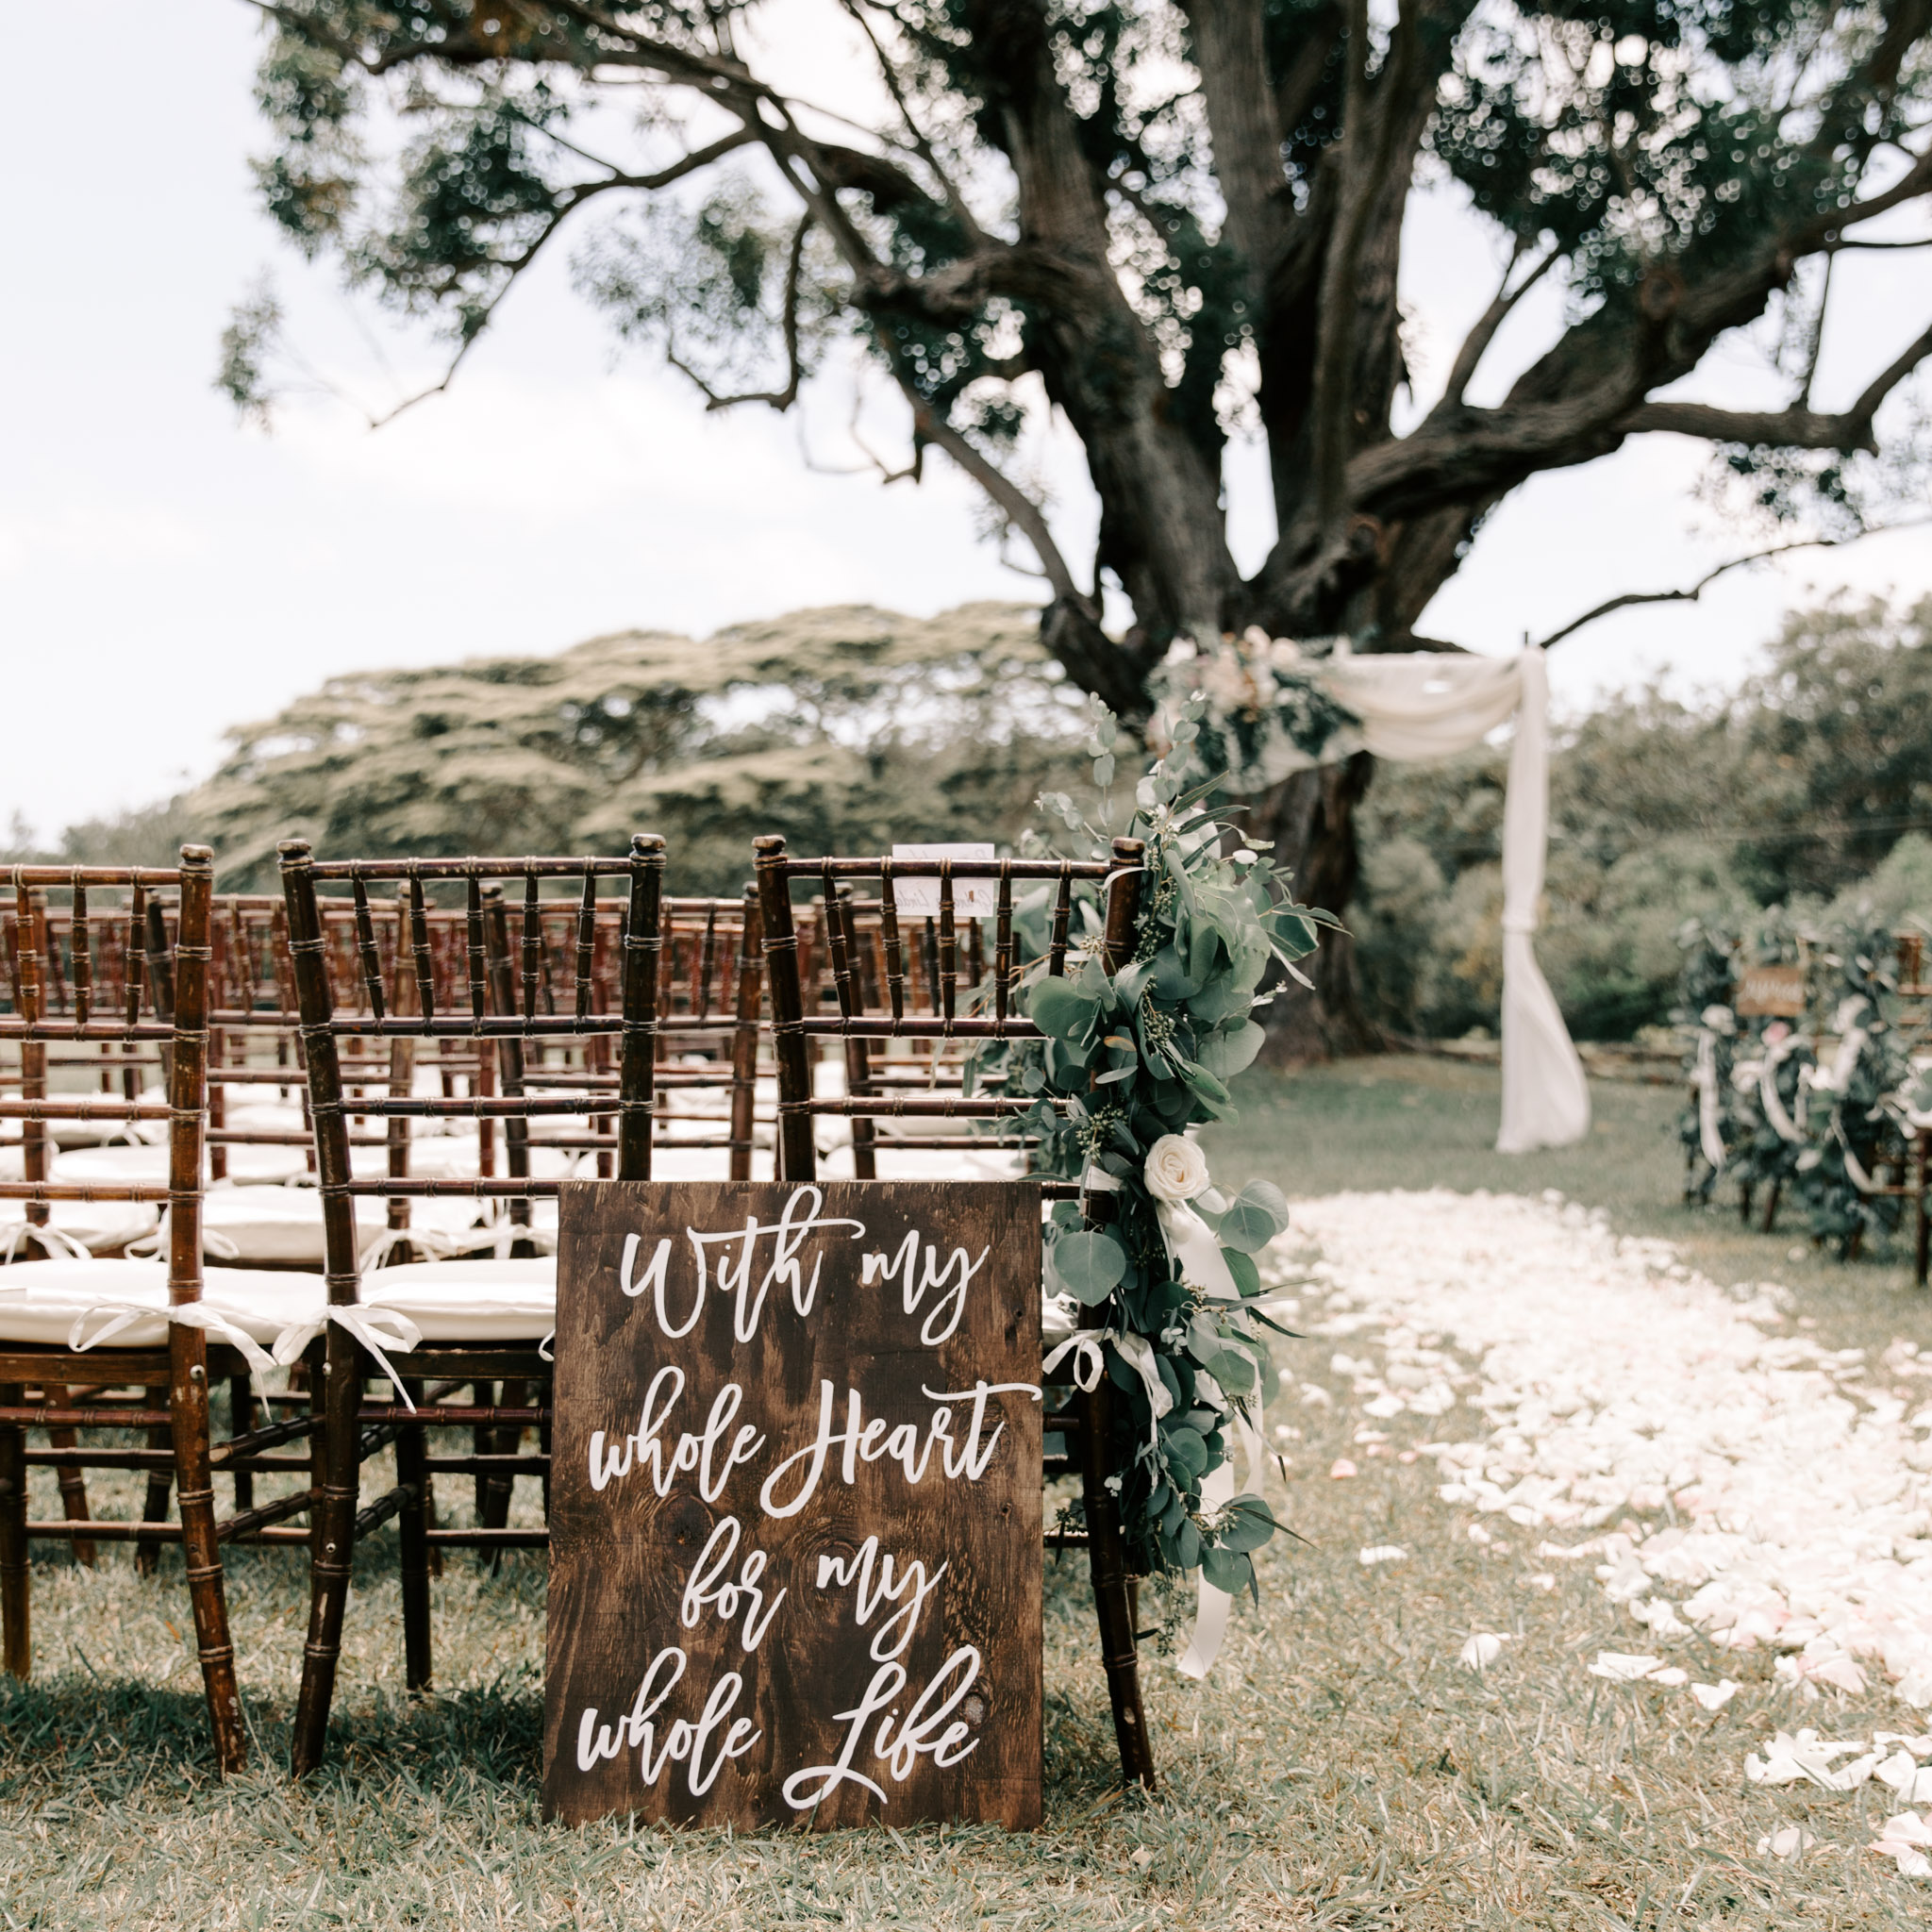 """With my whole heart for my whole life"" wedding ceremony sign idea - Sunset Ranch Hawaii Wedding By Oahu Wedding Photographer Desiree Leilani"